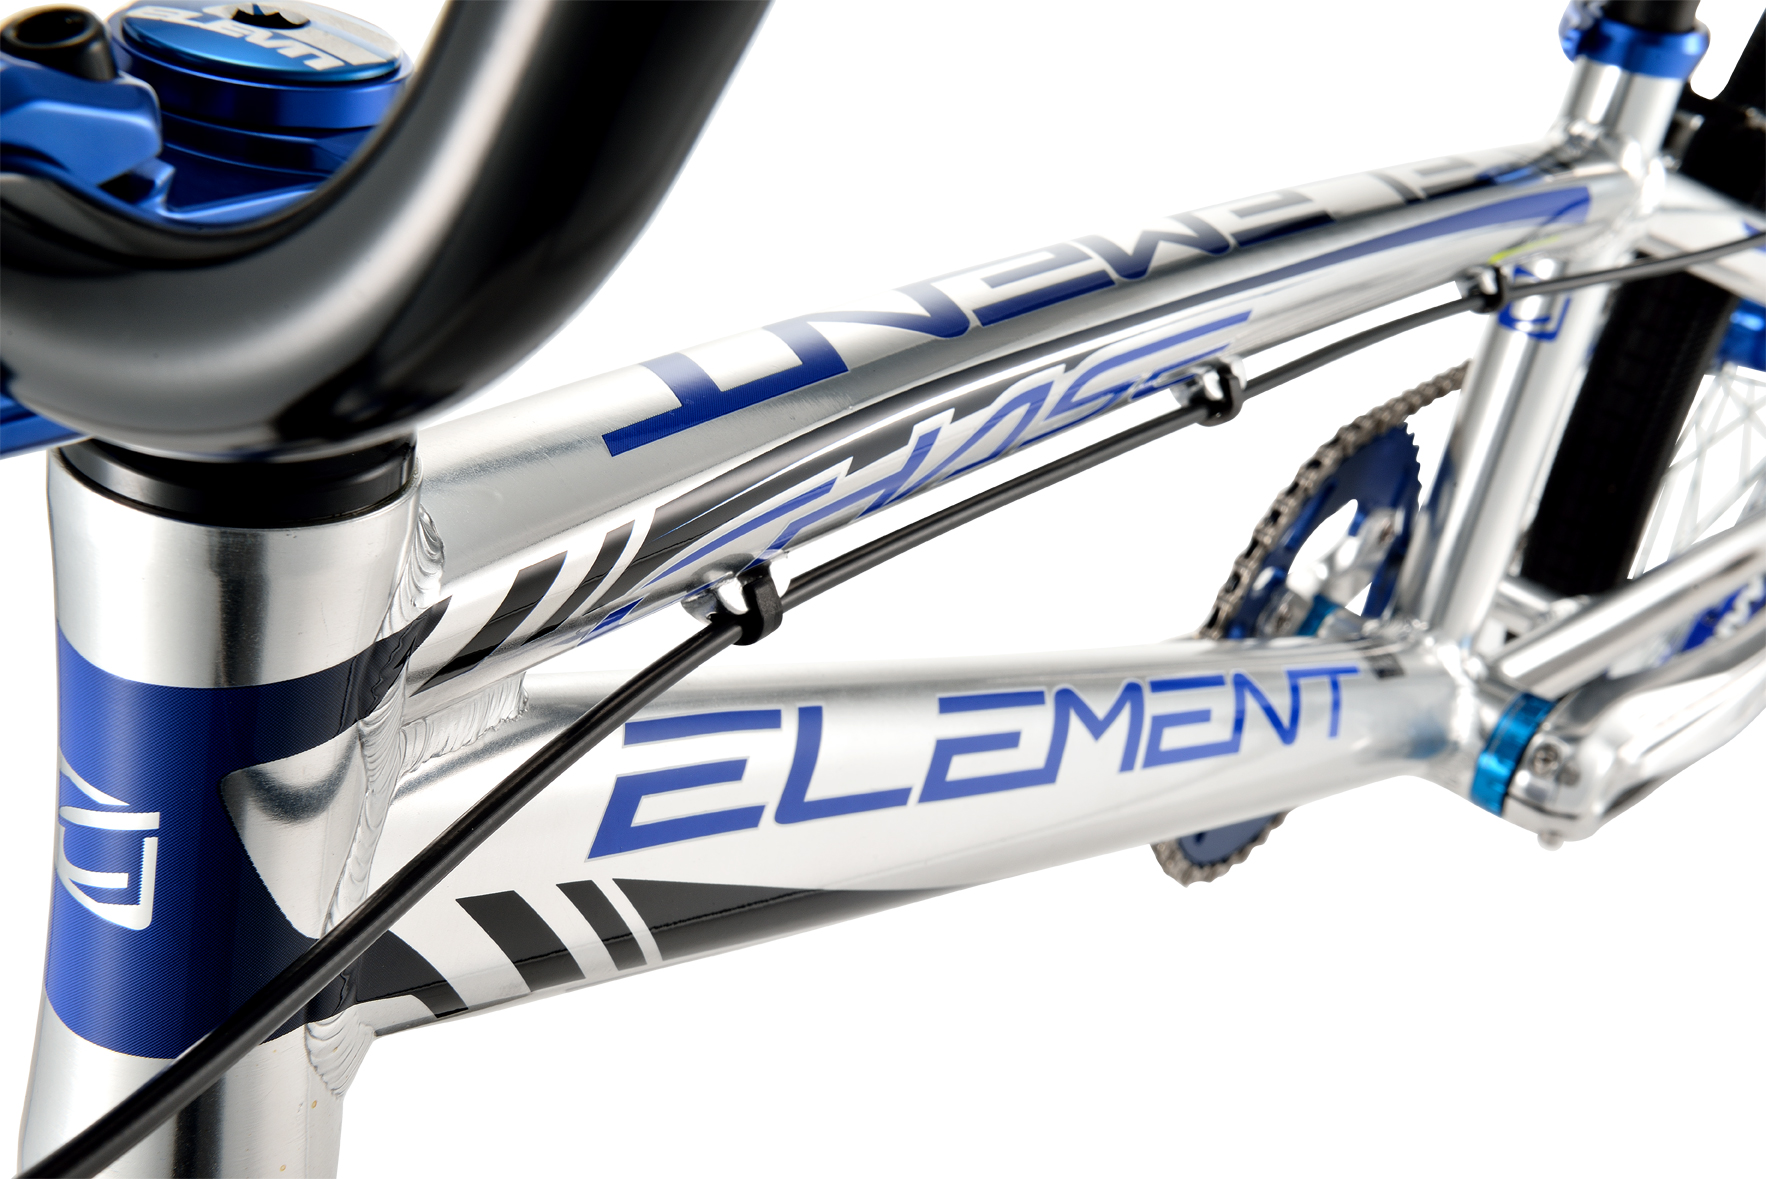 2016 Chase Element Bikes and Frames are in stock now!